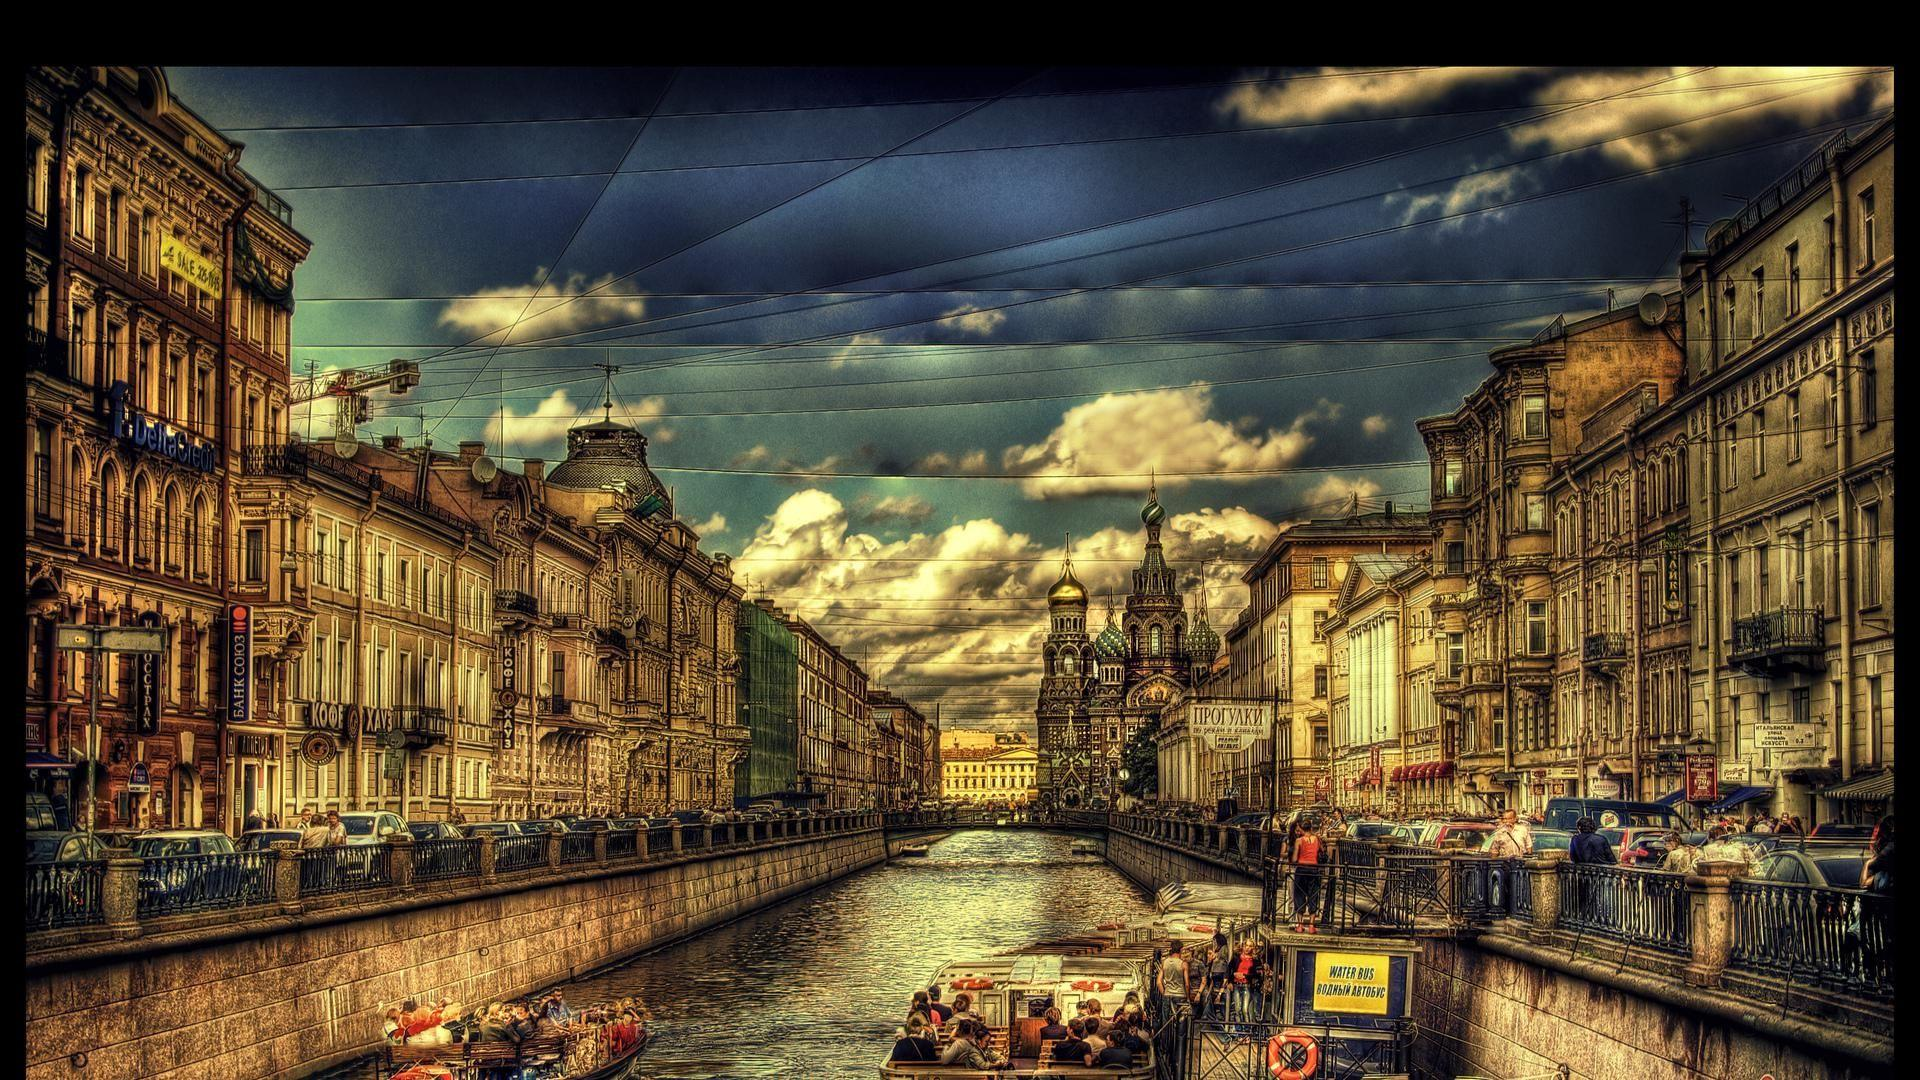 WallpaperMISC - Saint Petersburg HDR HD Wallpaper 2 - 1920 X 1080 ...